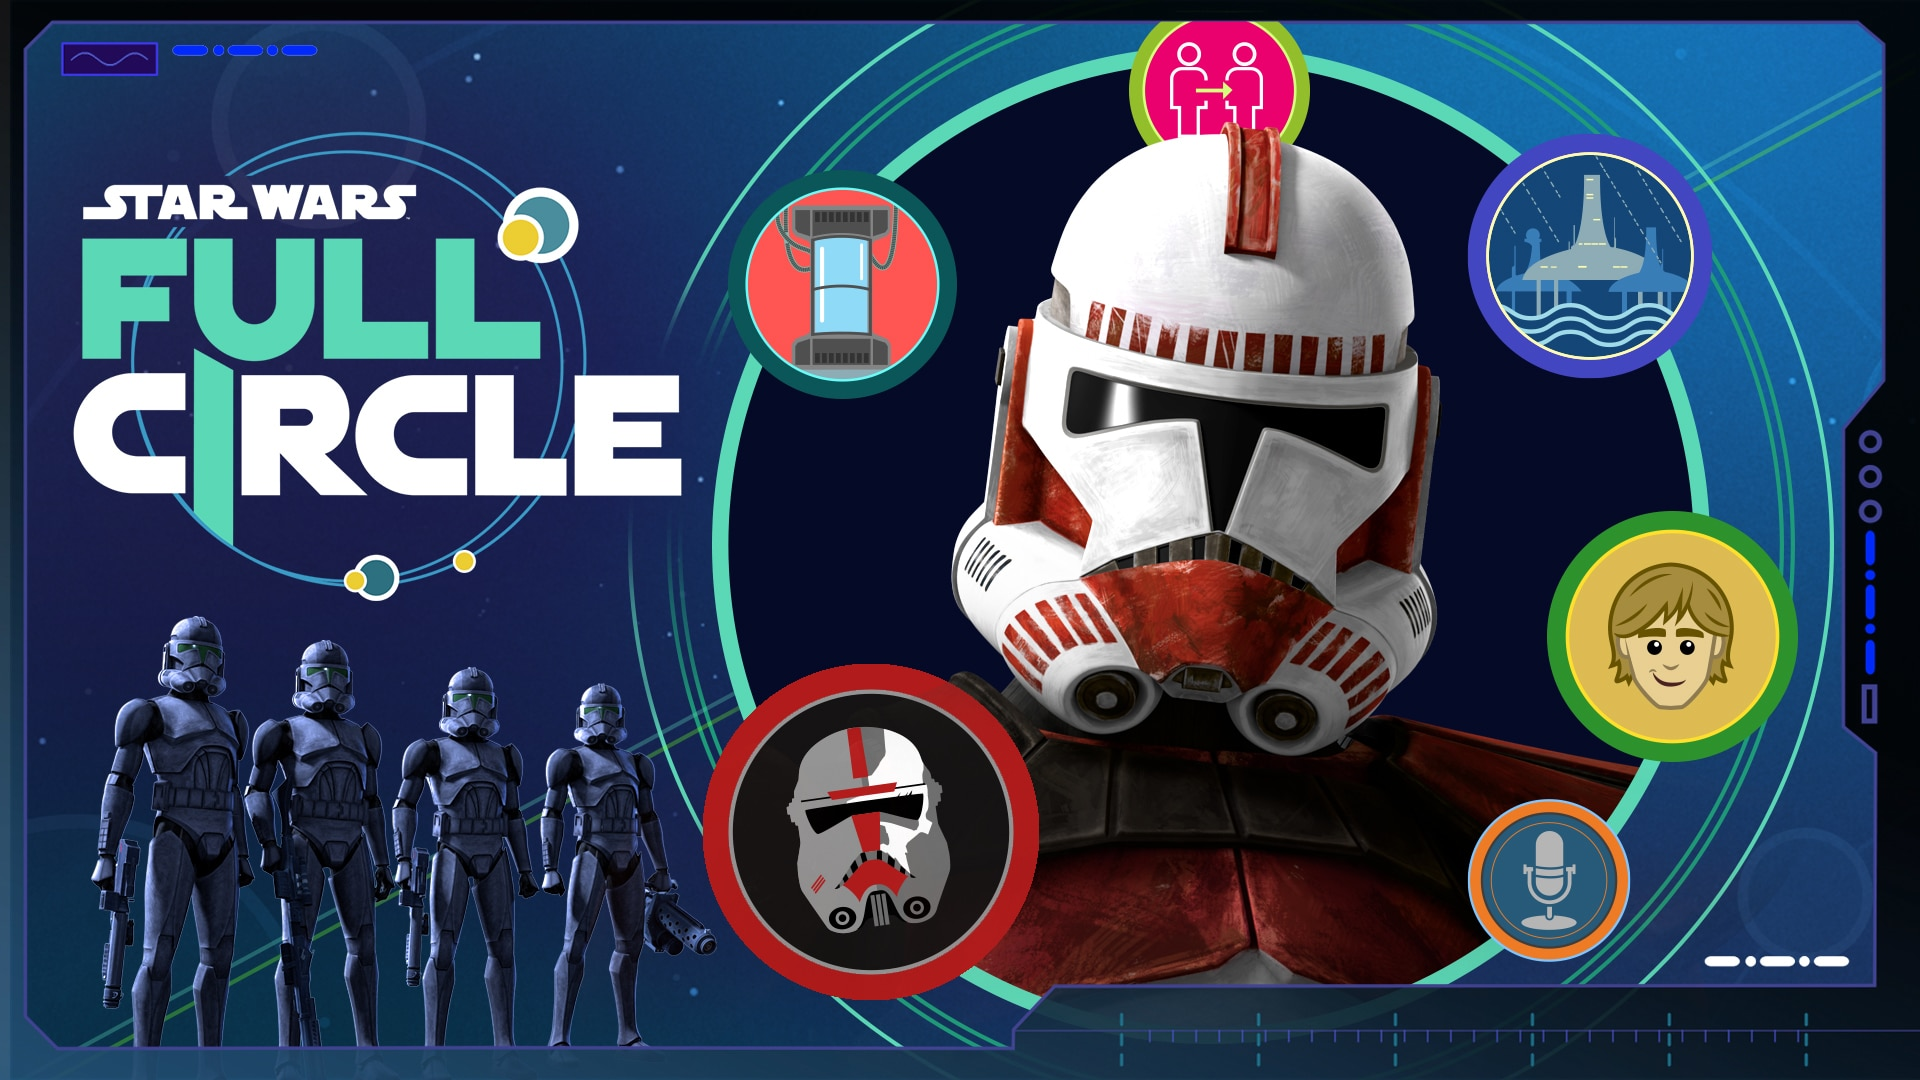 Clone Force 99 | Star Wars Full Circle